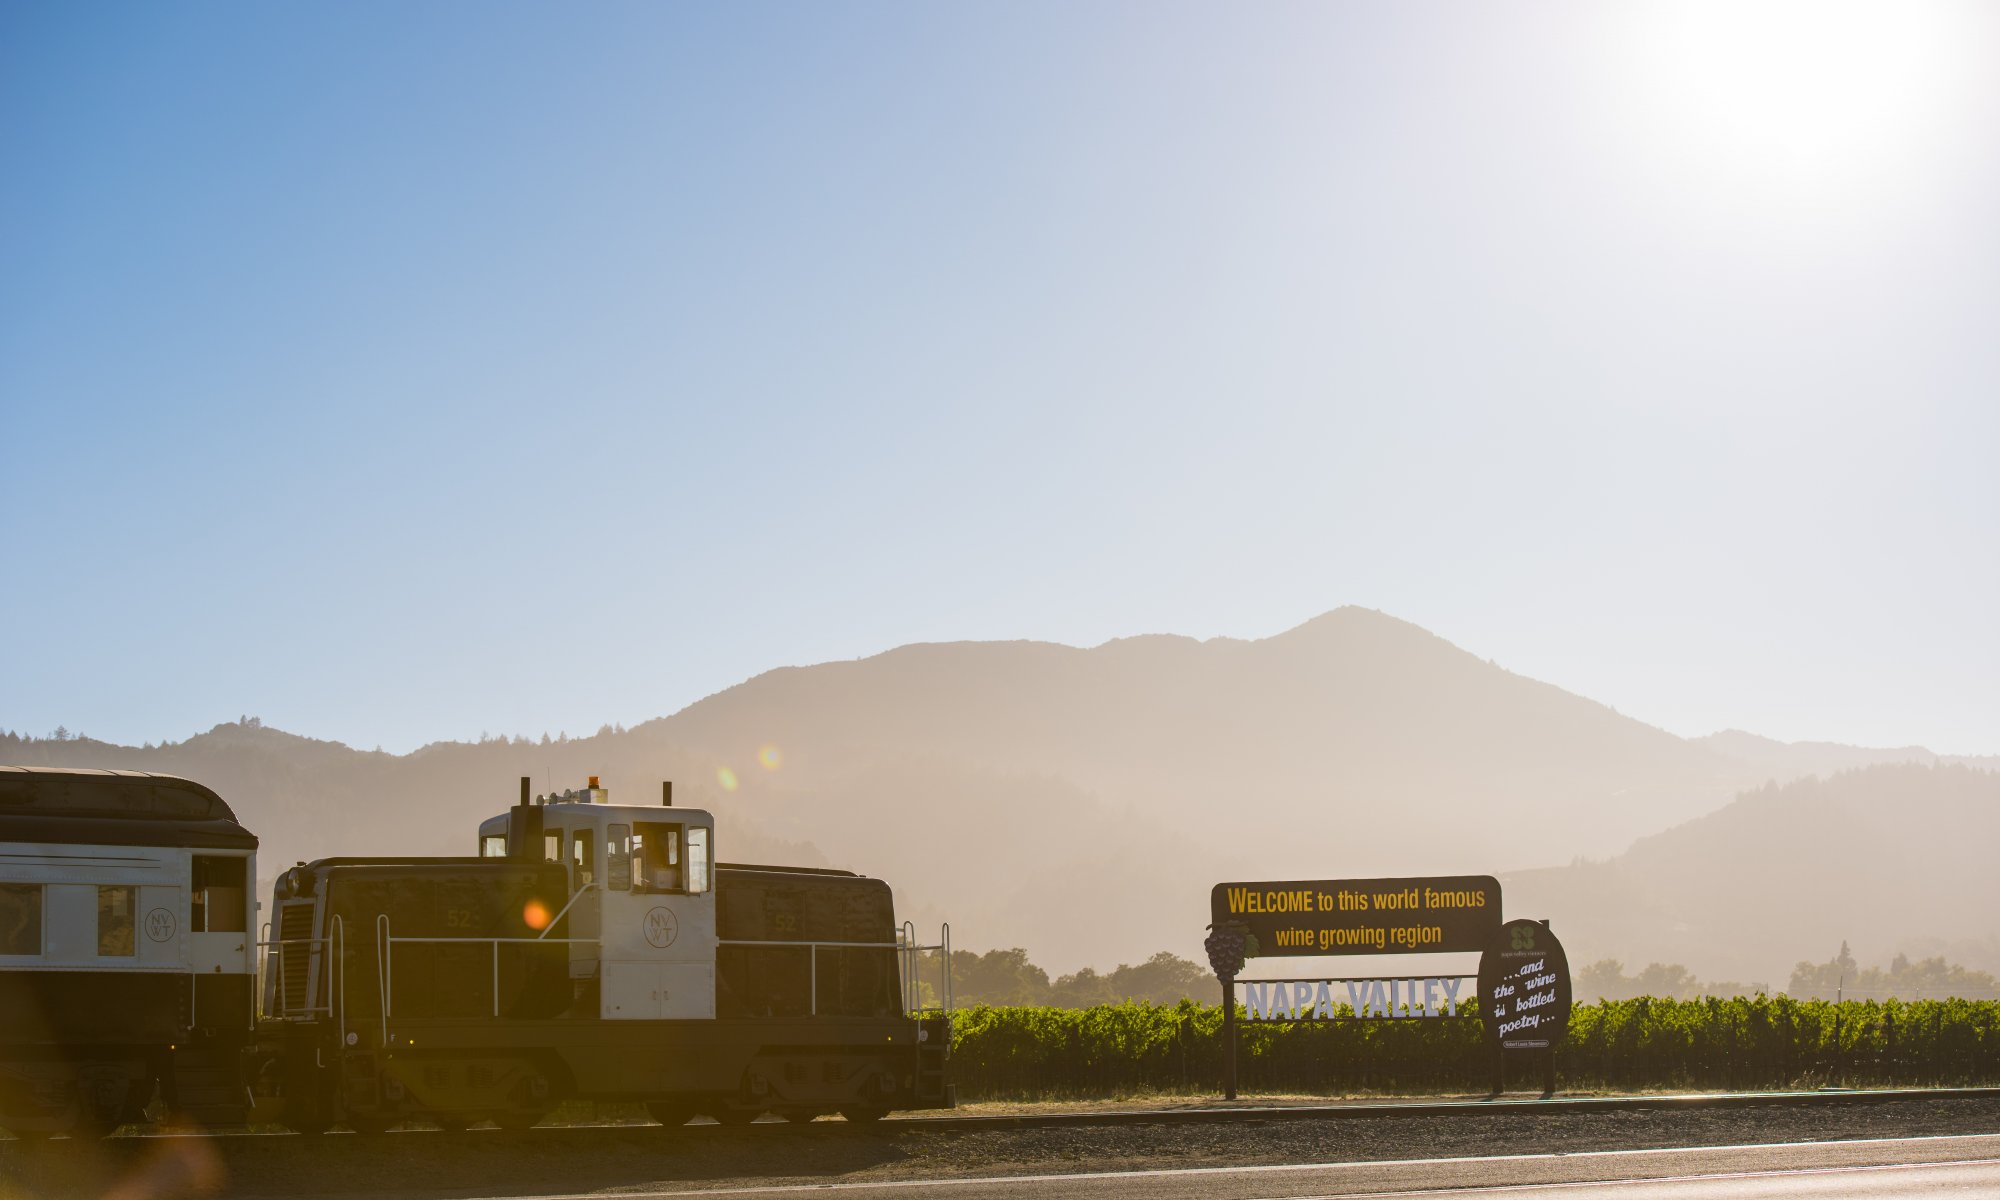 The Napa Valley Wine Train engine next to a Welcome to Napa sign.